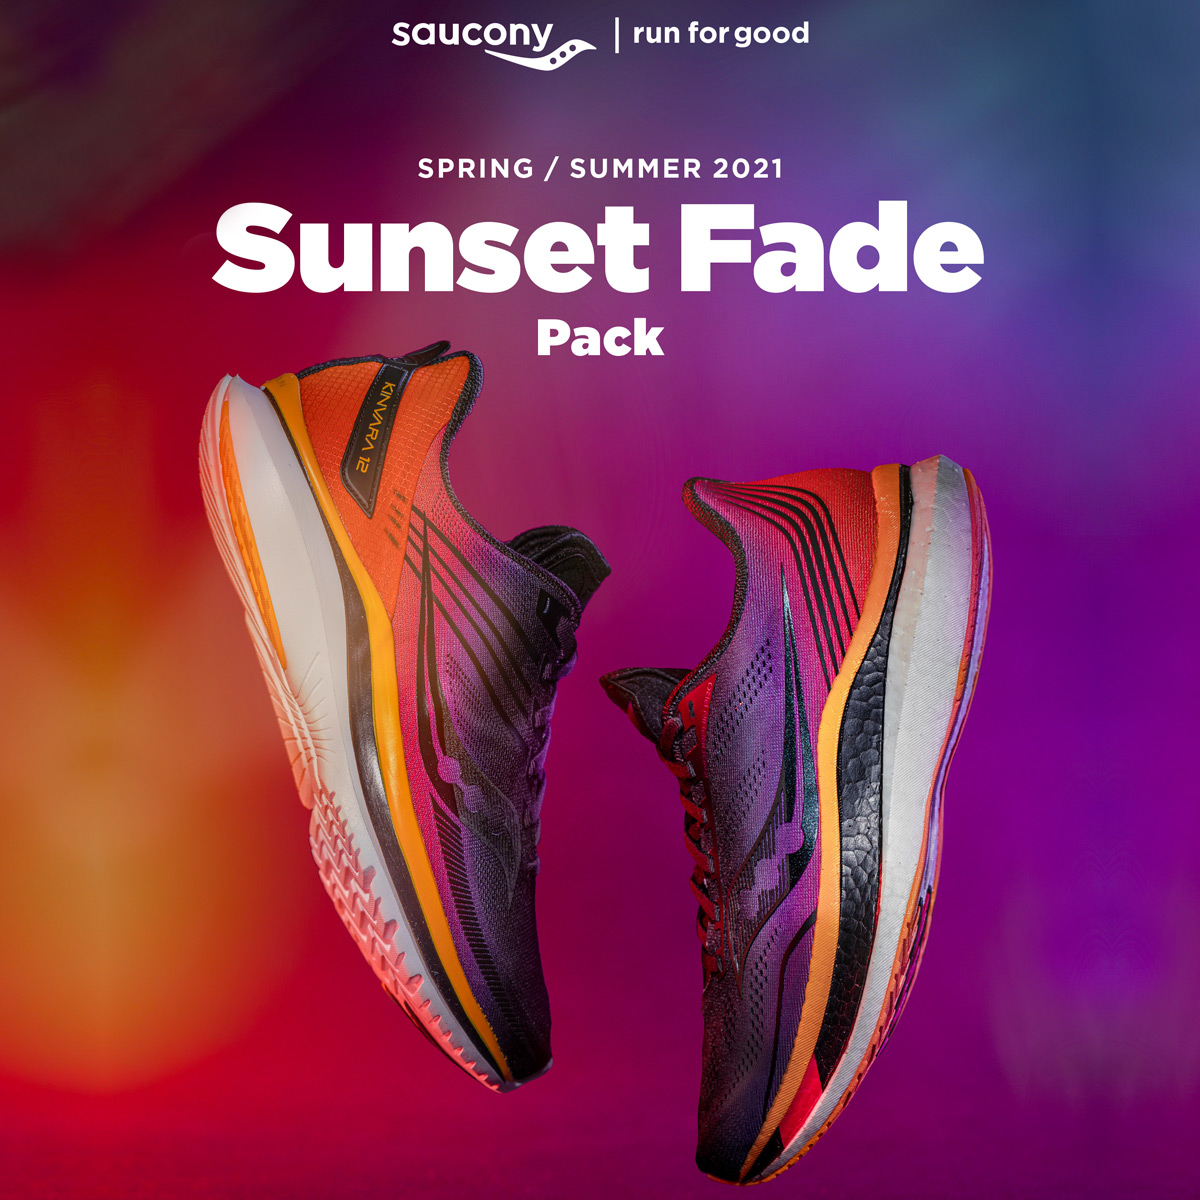 Saucony Sunset Fade Pack